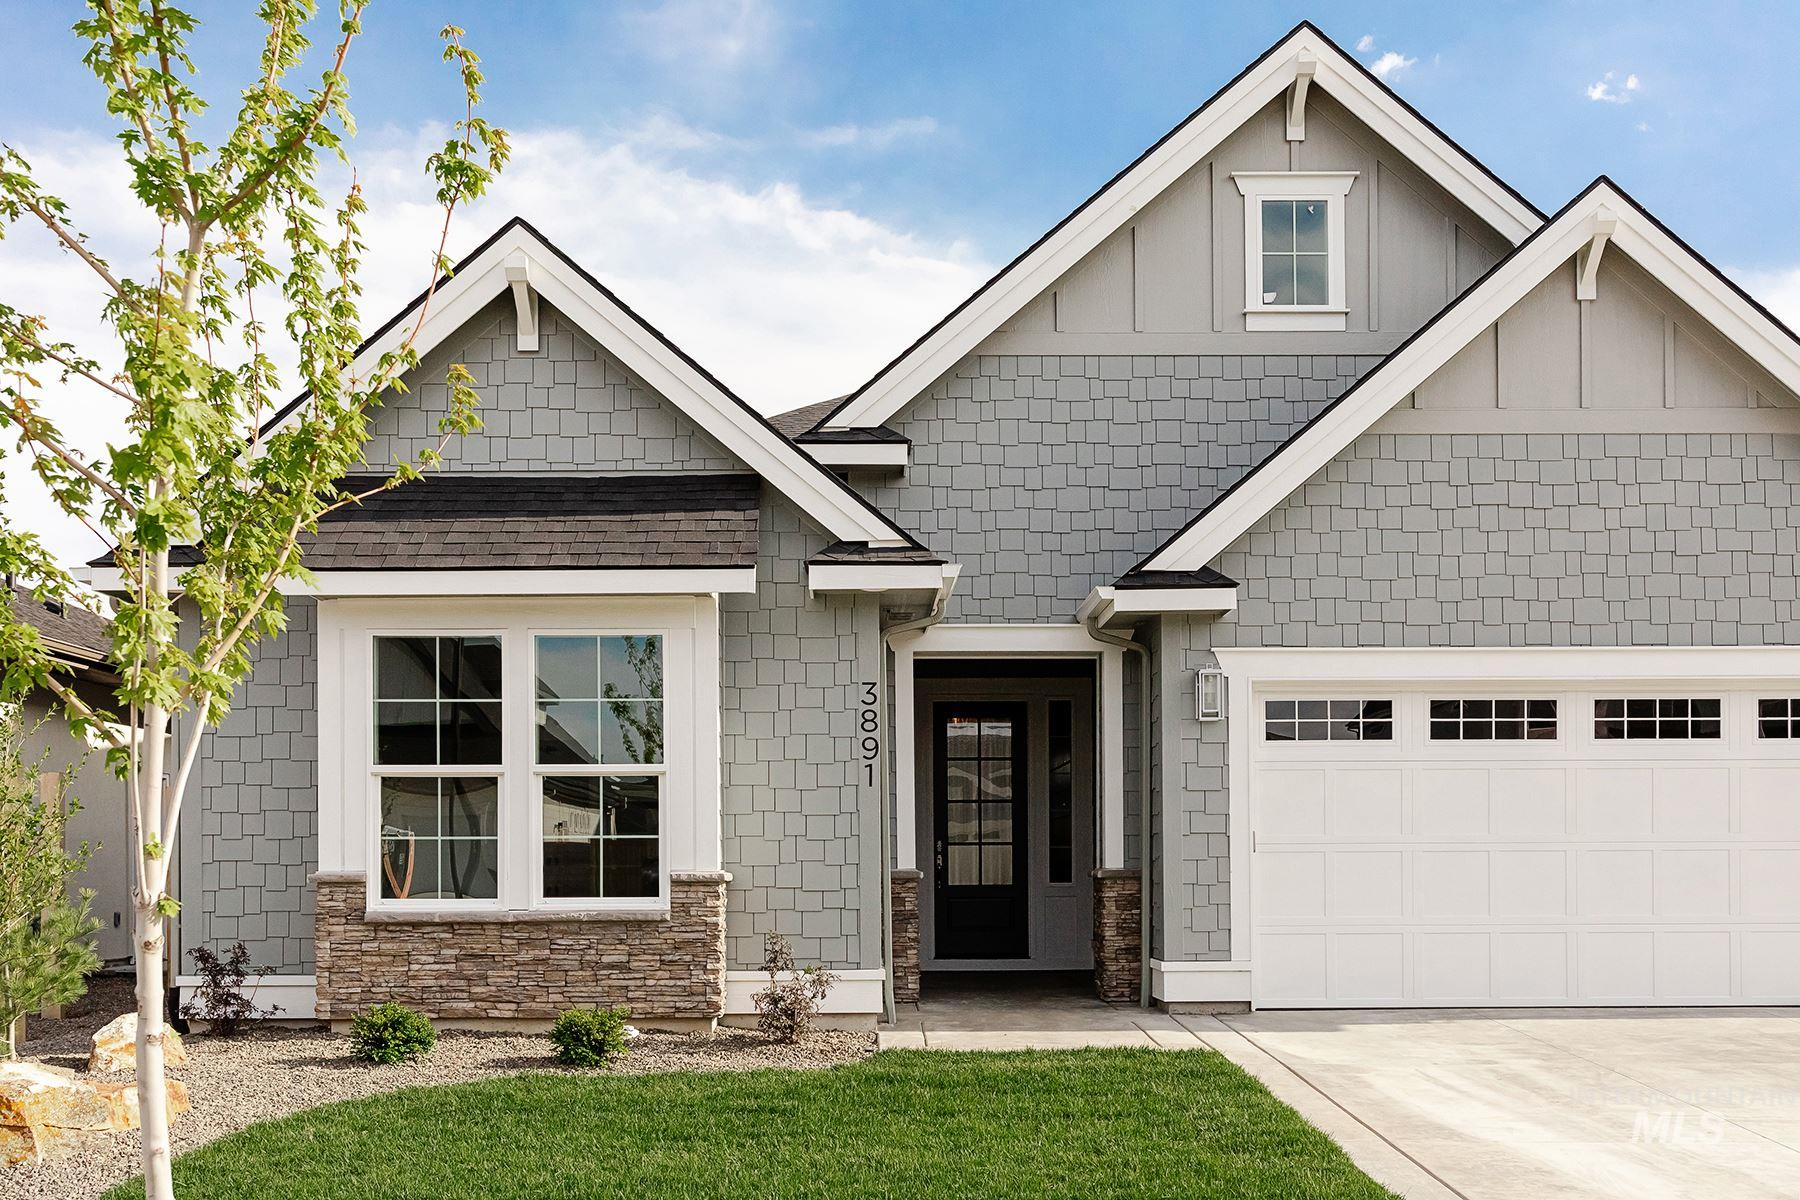 """PHOTO SIMILAR!! The """"Peyton Taylor"""" by James Clyde Homes. New Floor Plan with all the bells and whistles you've come to expect from James Clyde: Extensive hardwood, amazing stainless steel Thermador appliances, custom built cabinetry, breathtaking trim work & detail that only a true craftsman can deliver! Great Room has Vault Ceiling with Beams. Full landscaping front & back-Fencing! Completion date 8/5/2020 BVTAI"""